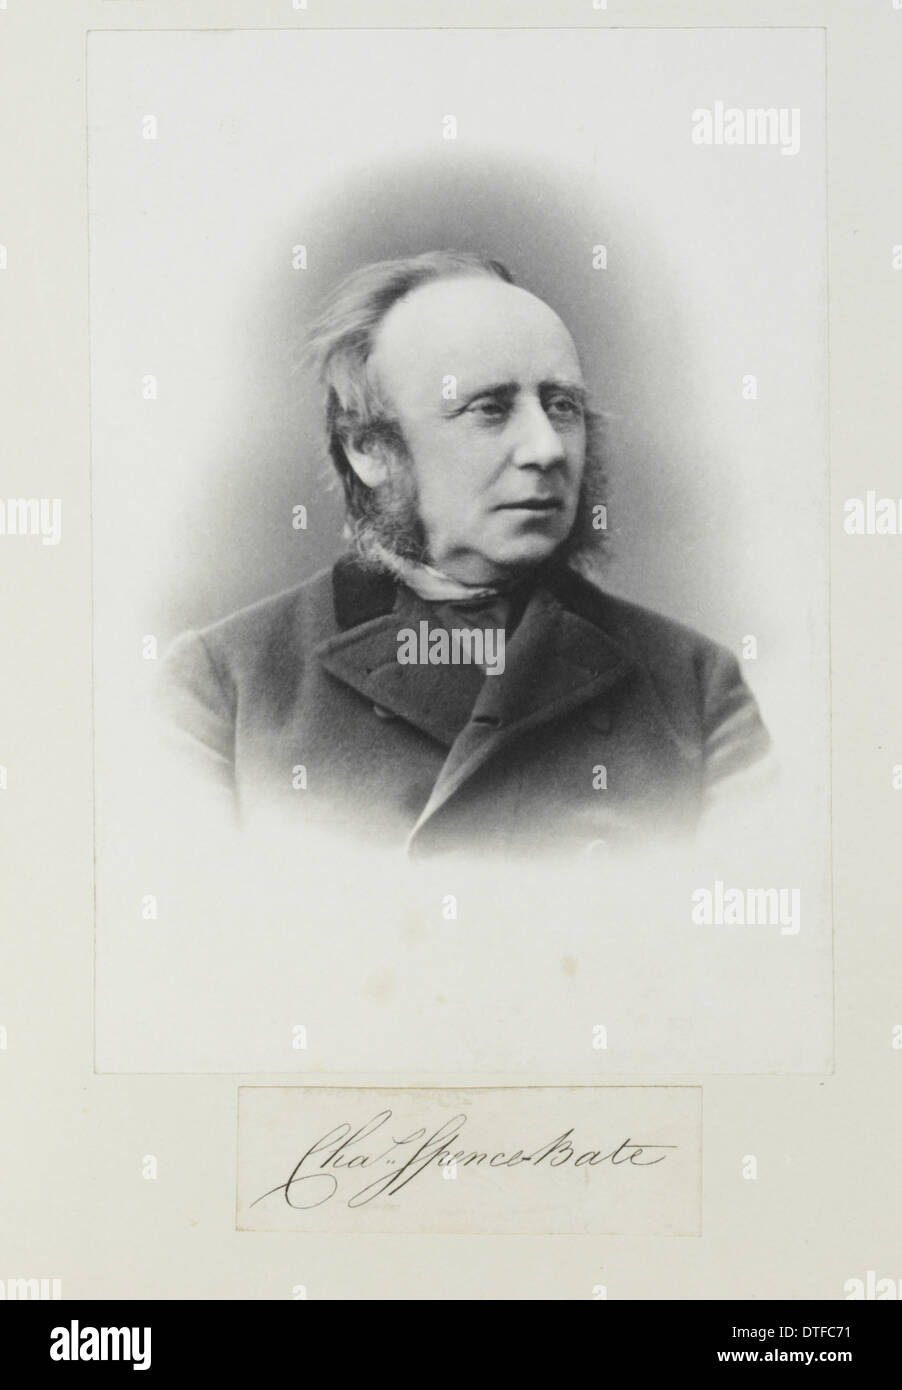 Charles Spence Bate (1819-1889) - Stock Image